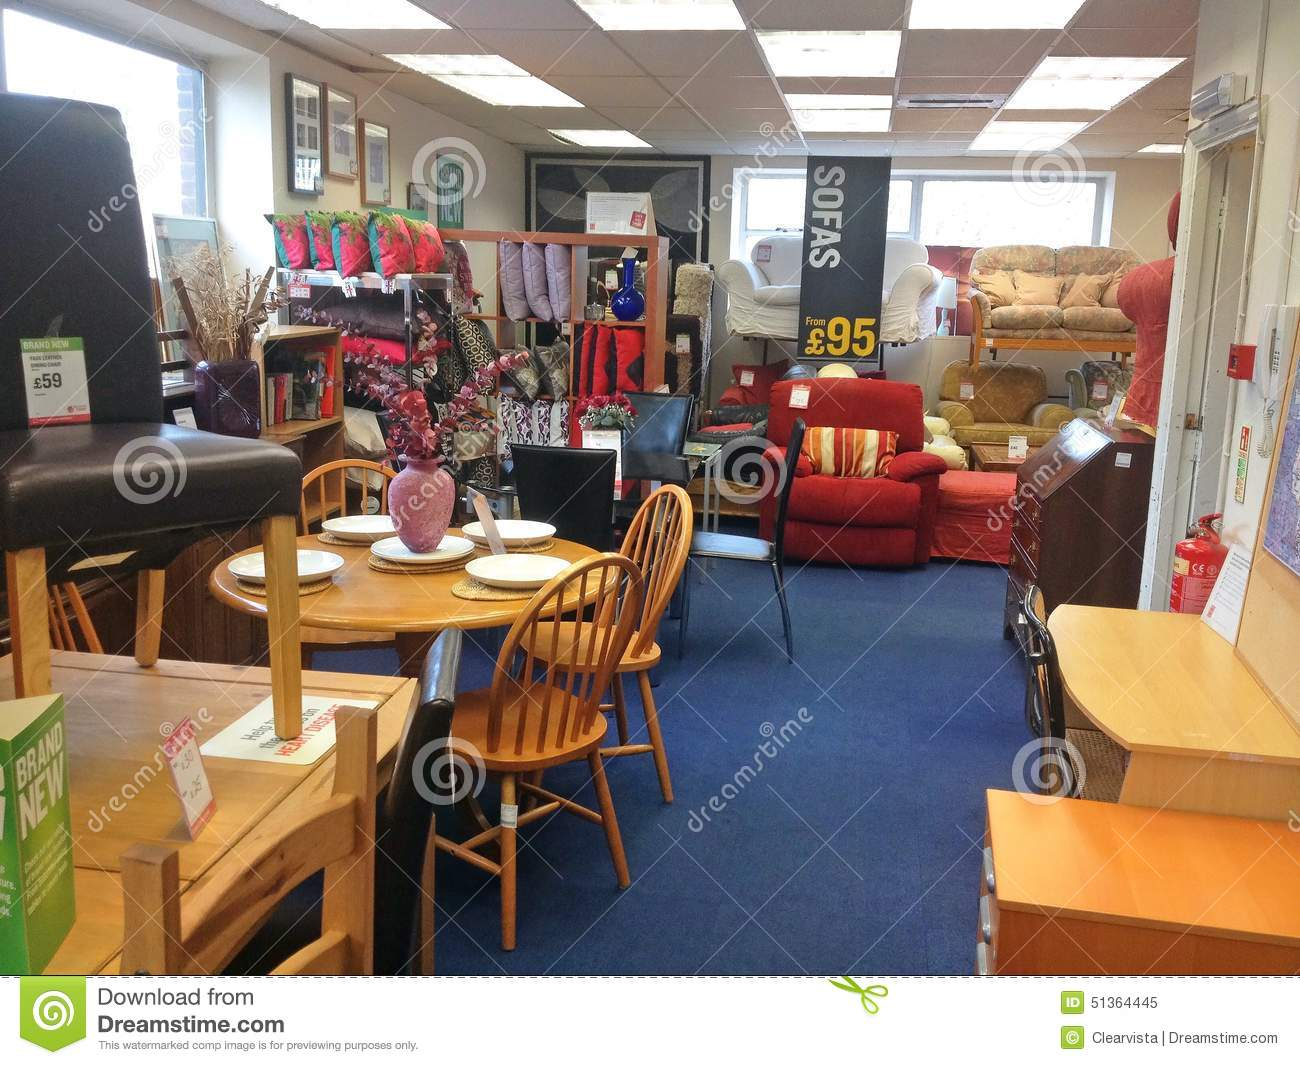 2Nd Hand Furniture Stores Stunning Furniture Inside A Second Hand Used Charity Shopeditorial Image . Inspiration